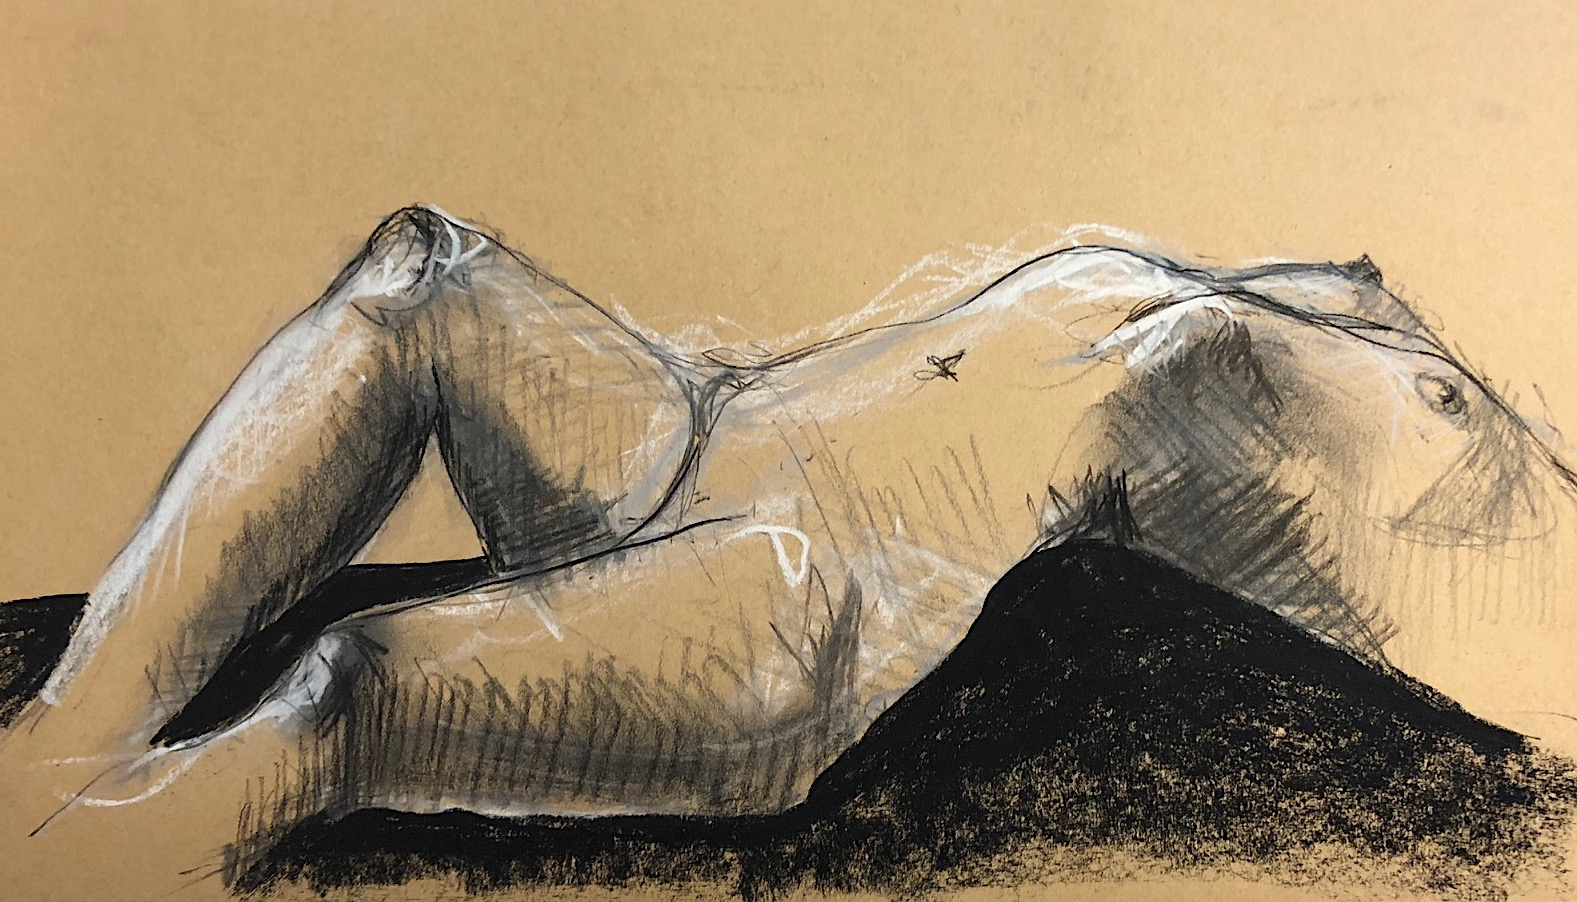 Graeme Gould, Charcoal on brown paper, 2018